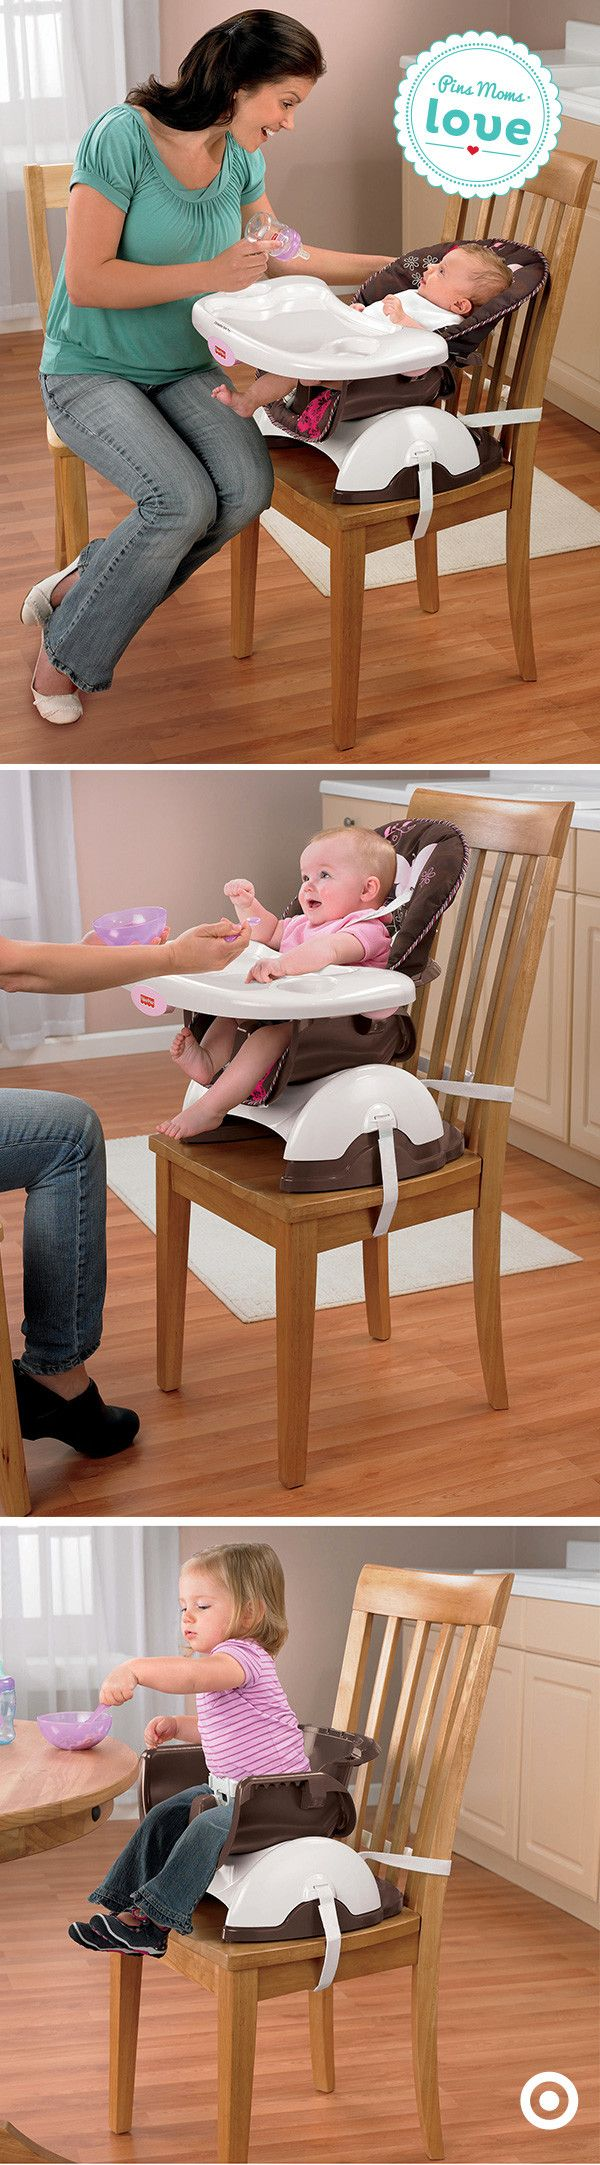 The Fisher-Price Space-Saver Highchair grows with your baby from infant to toddler. Plus, it only takes up half the space of a full-sized highchair.